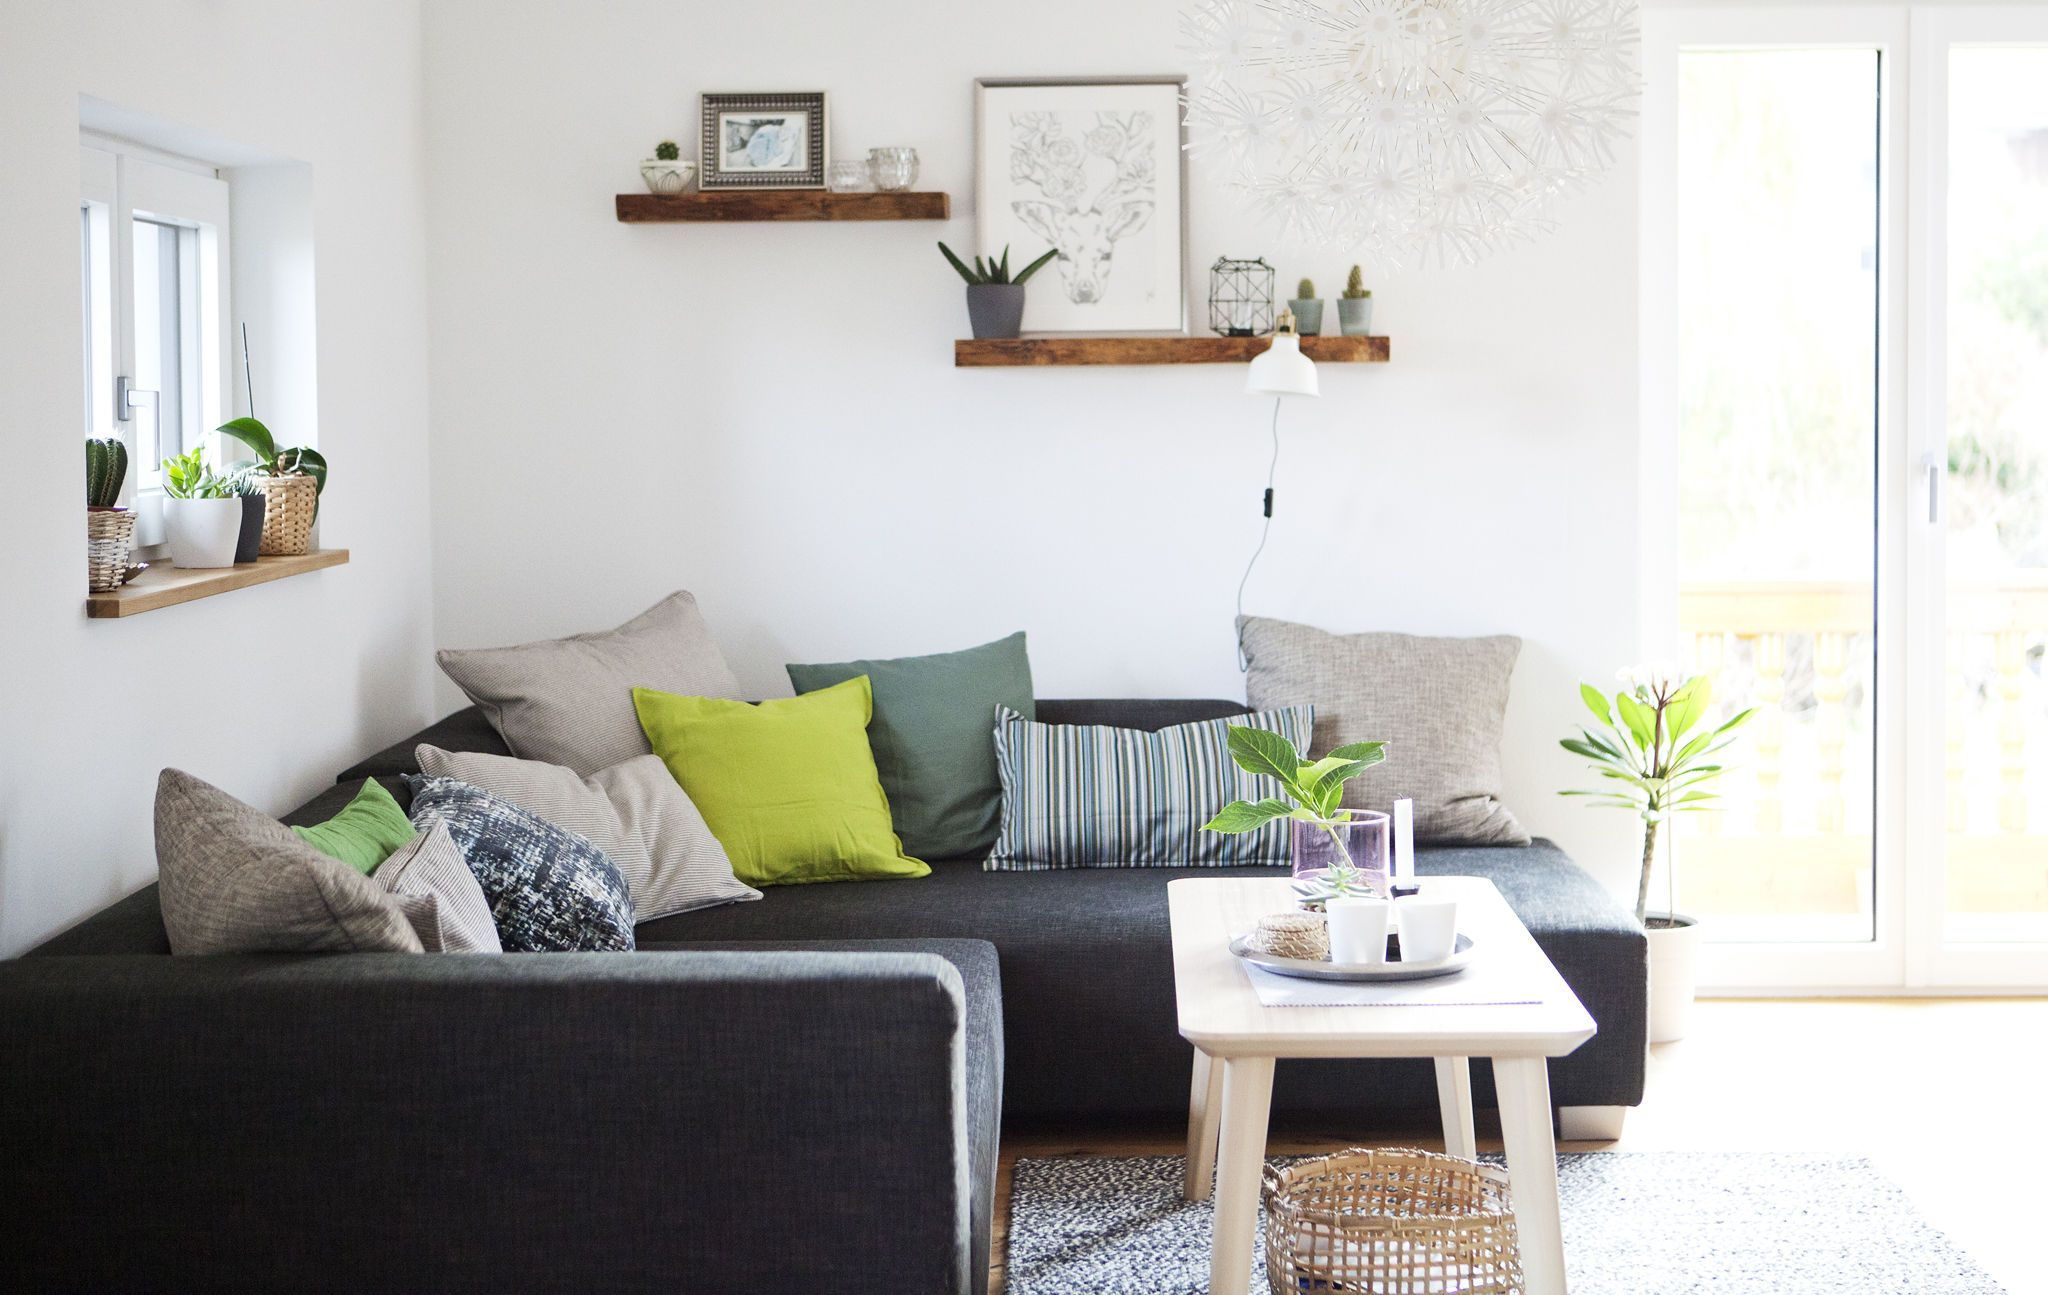 Explore a cosy apartment within a larger family home | Cosy ...